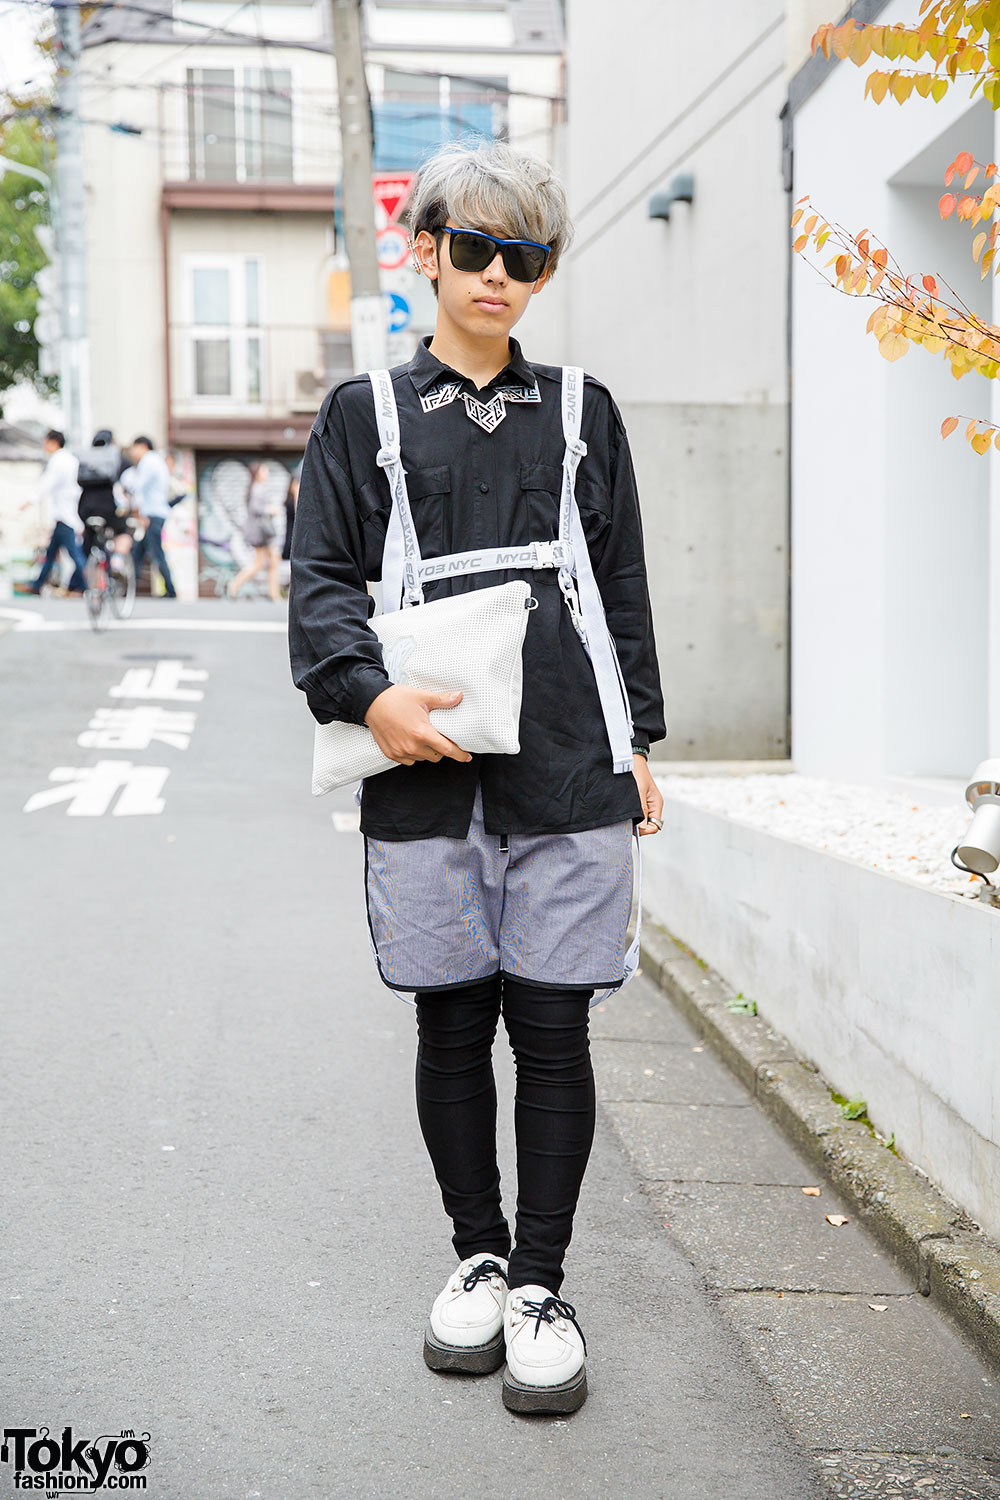 TK 2014 10 04 001 001 Harajuku harajuku guy in m y o b harness, george cox creepers, kinsella